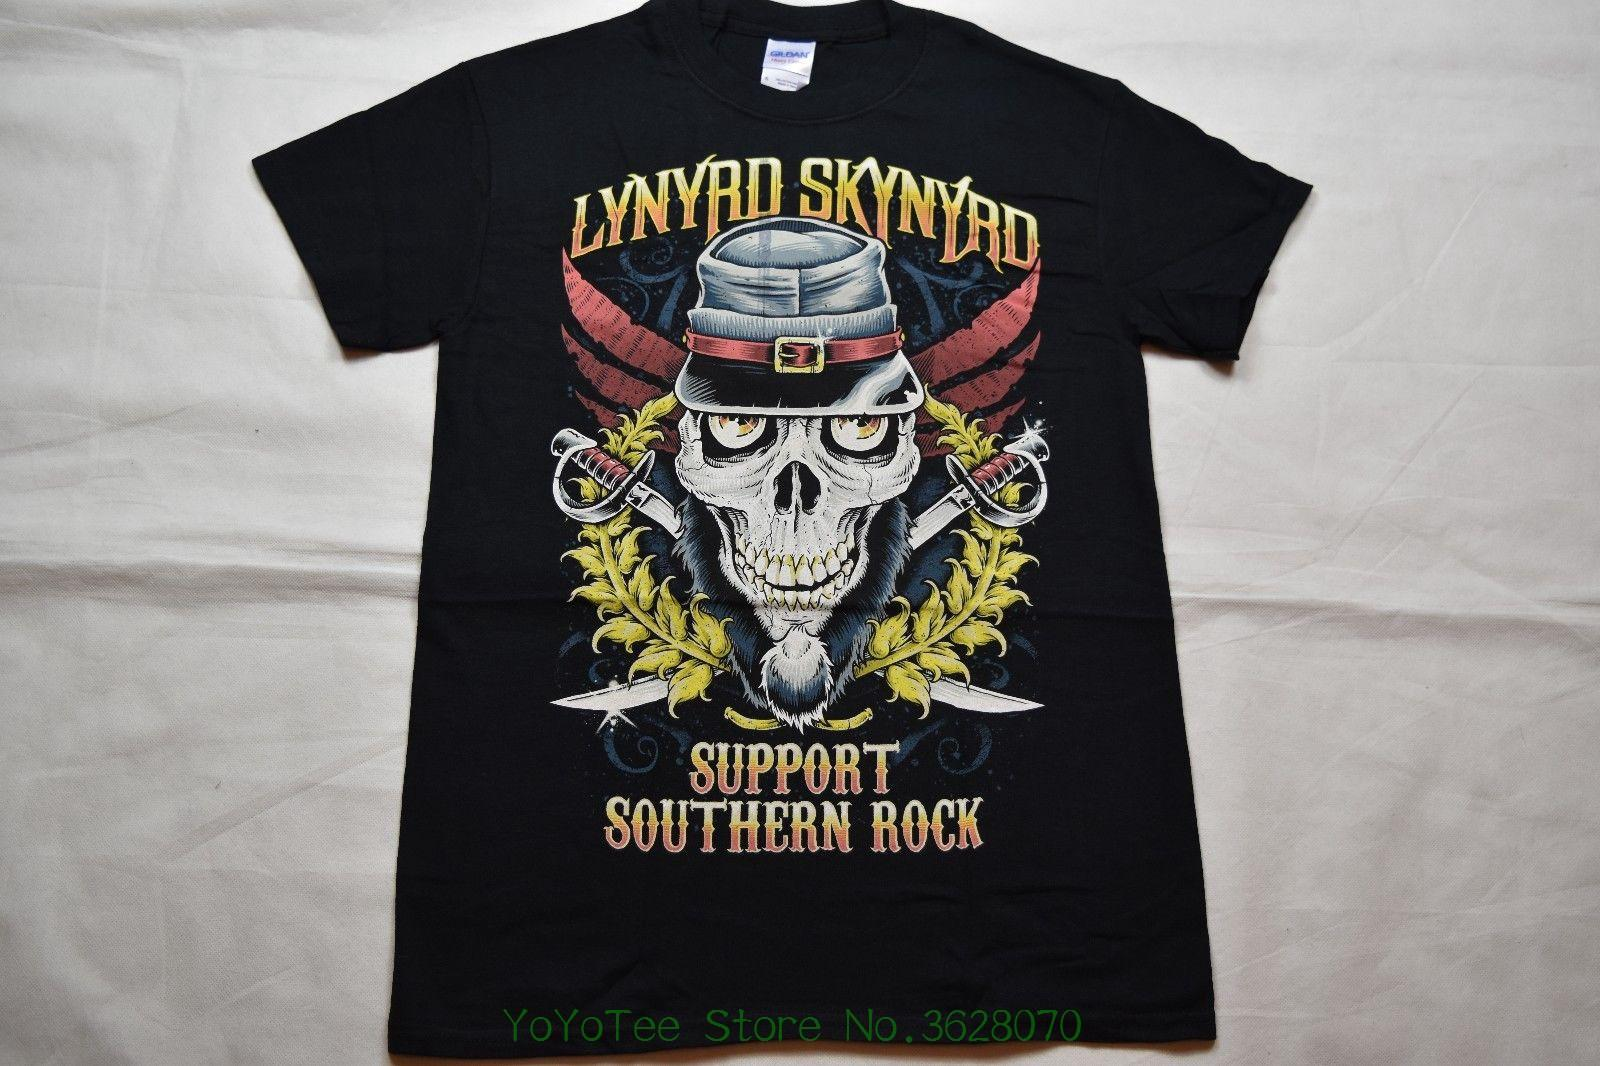 b783f35fe68cb Men T Shirt Lynyrd Skynyrd Support Southern Rock T Shirt New Official  Freebird Pronounced Buy Cool Shirts Online Funny T Shirt Sites From  Yoyoteestore